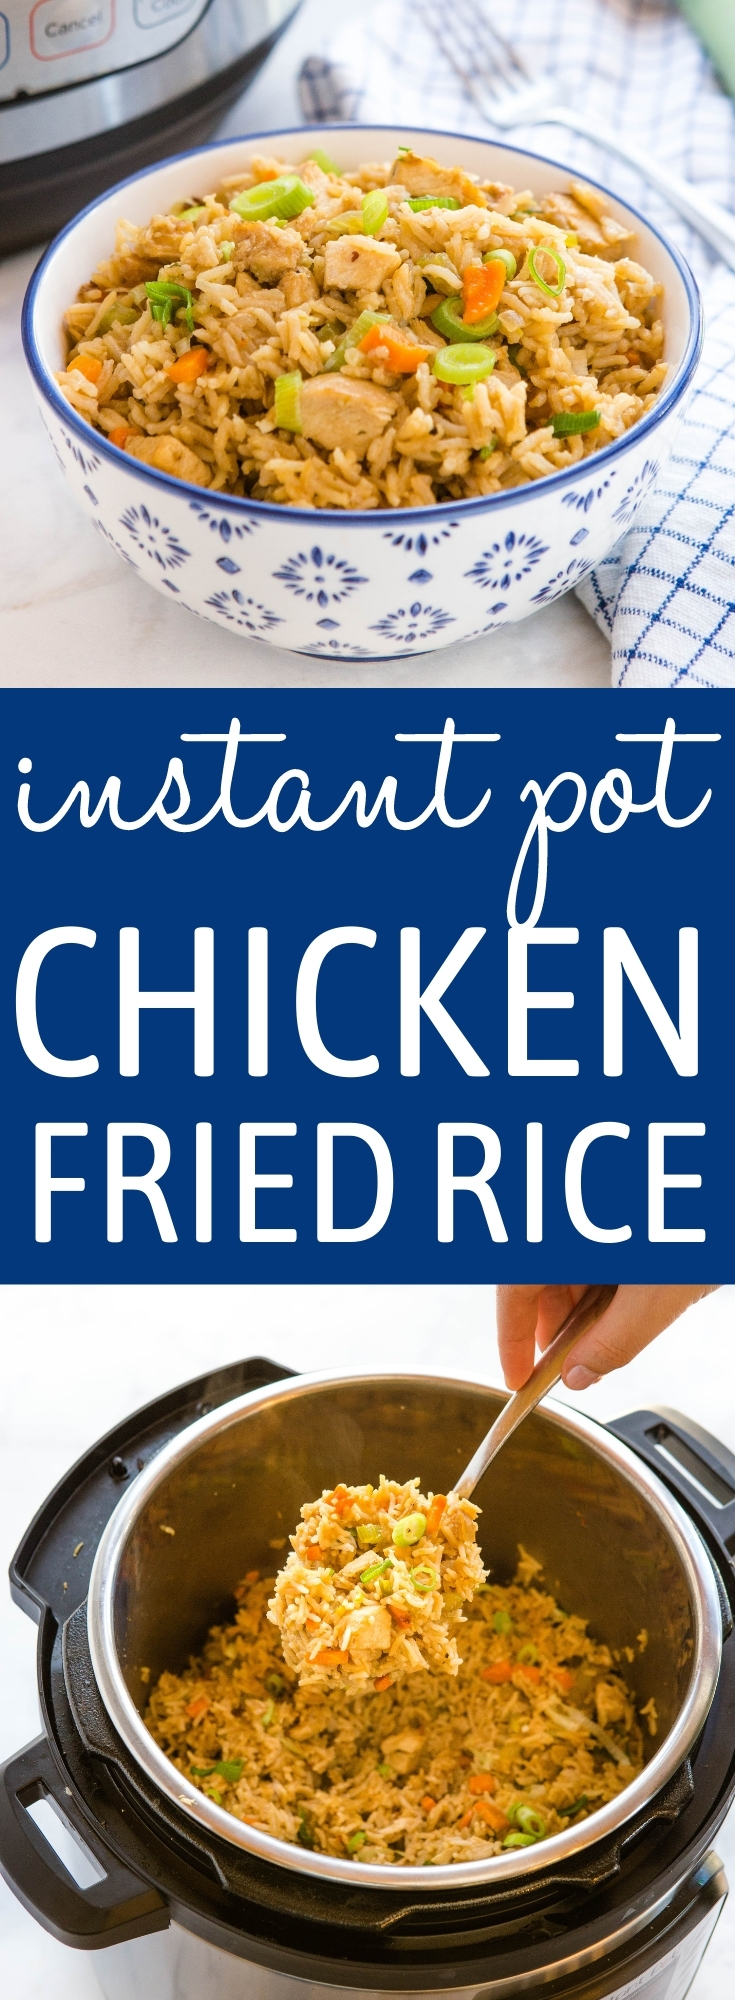 This Instant Pot Fried Rice with Chicken is an easy weeknight meal on the table in 25 minutes. Made with rice, chicken breast, and veggies - better than takeout fried rice! Recipe from thebusybaker.ca! #friedrice #takeout #easymeal #instantpot #weeknightmeal #familymeal #chinesetakeout #easyrecipe via @busybakerblog